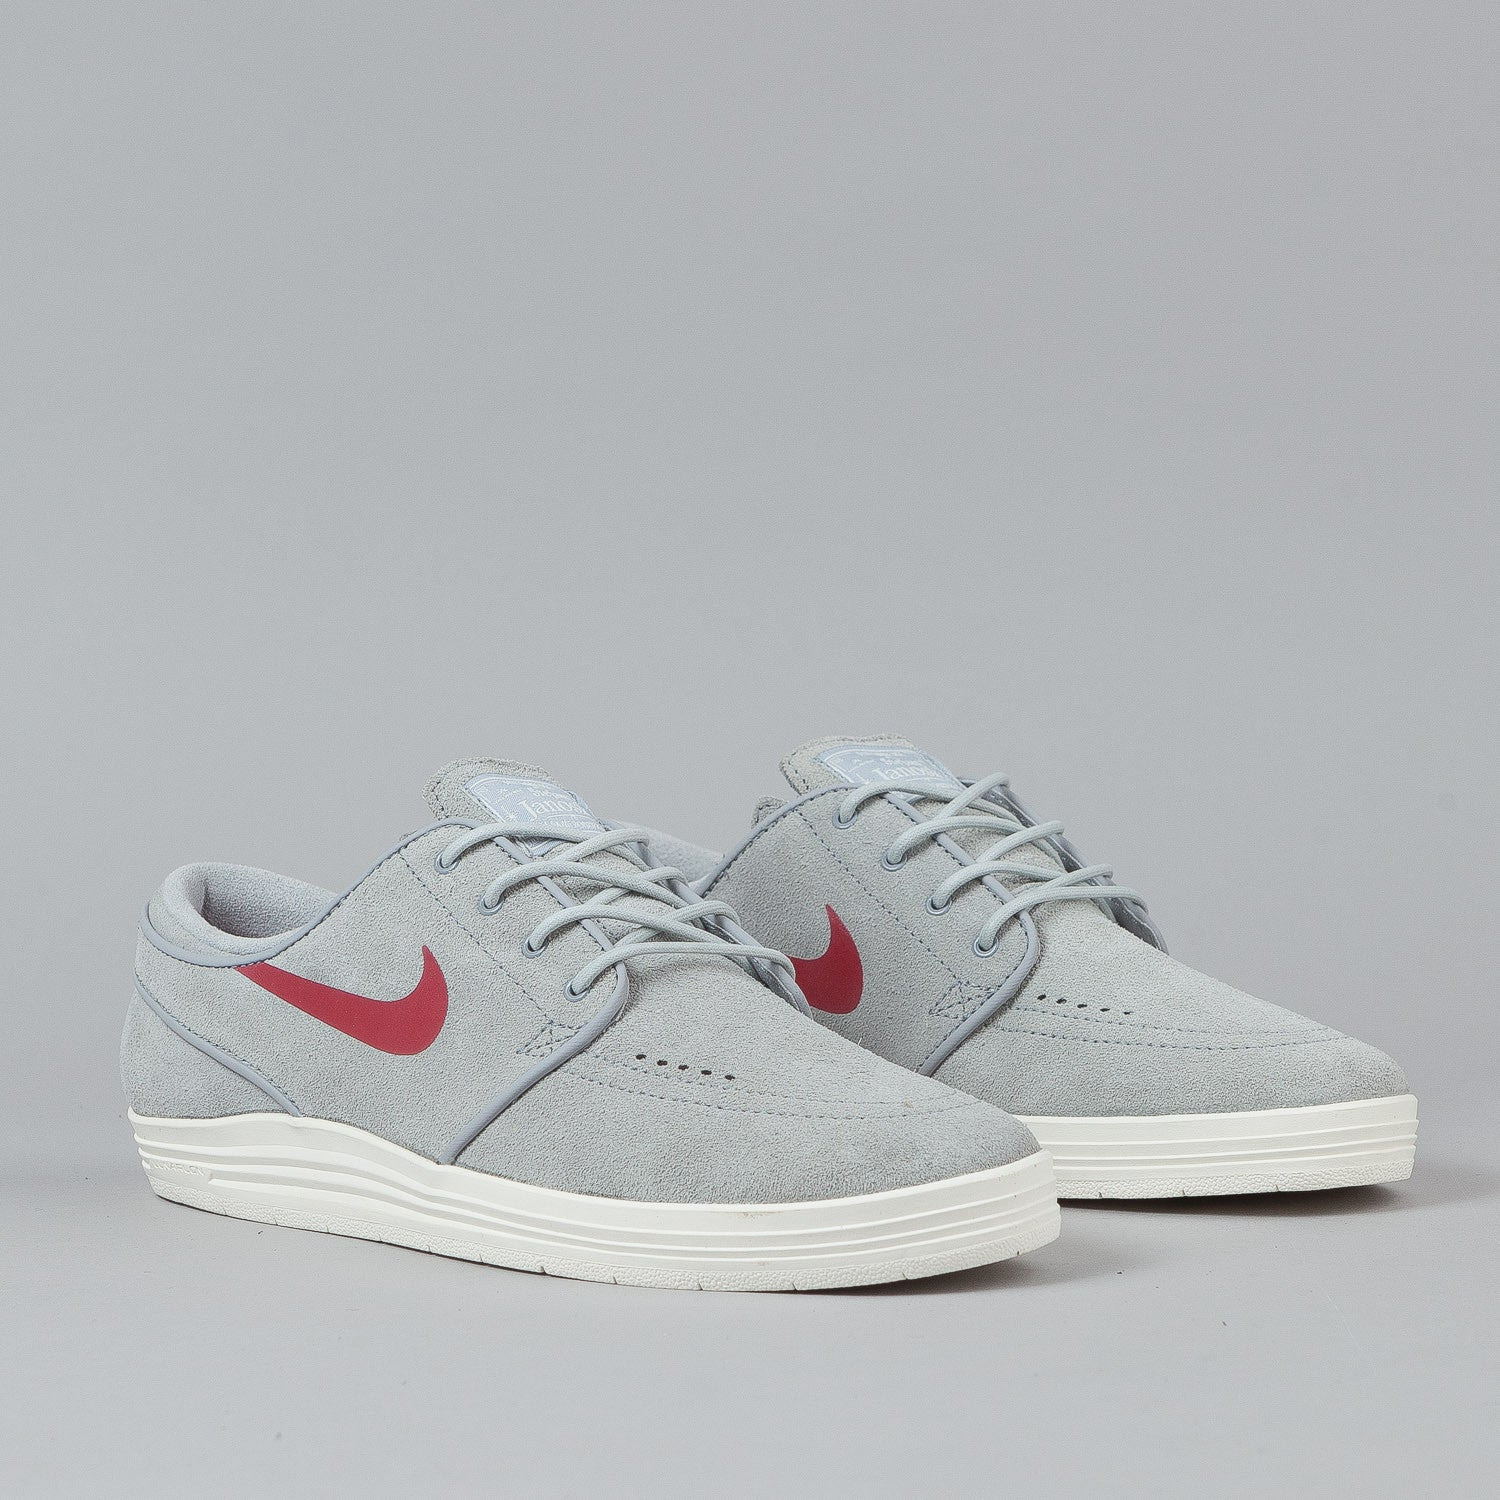 Nike SB Lunar Stefan Janoski Shoes Wolf Grey / Gym Red - Sail